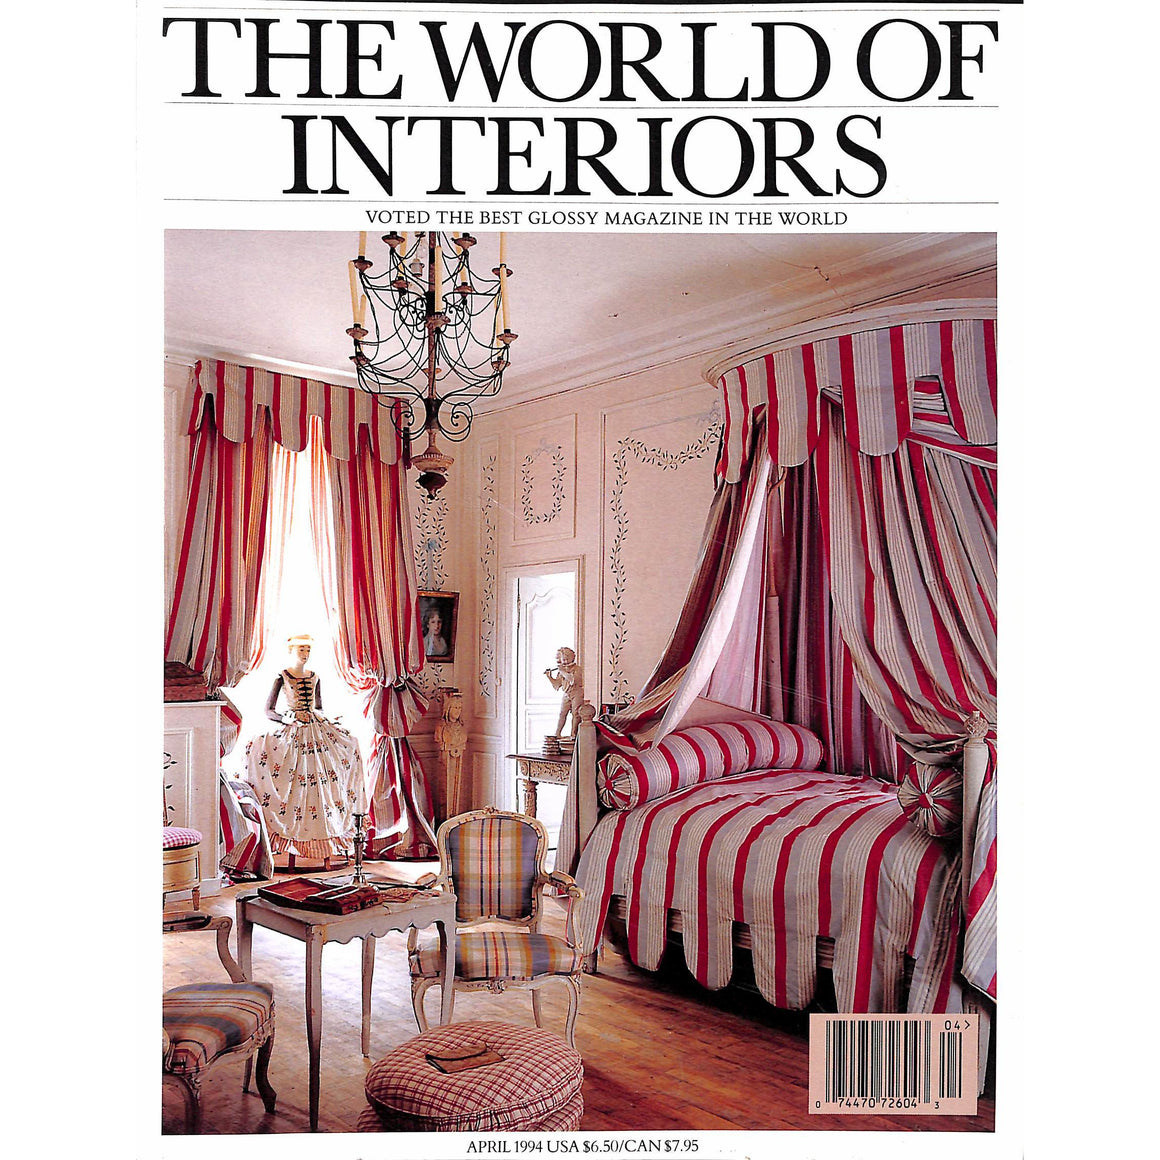 The World of Interiors April 1994 (Sold!)